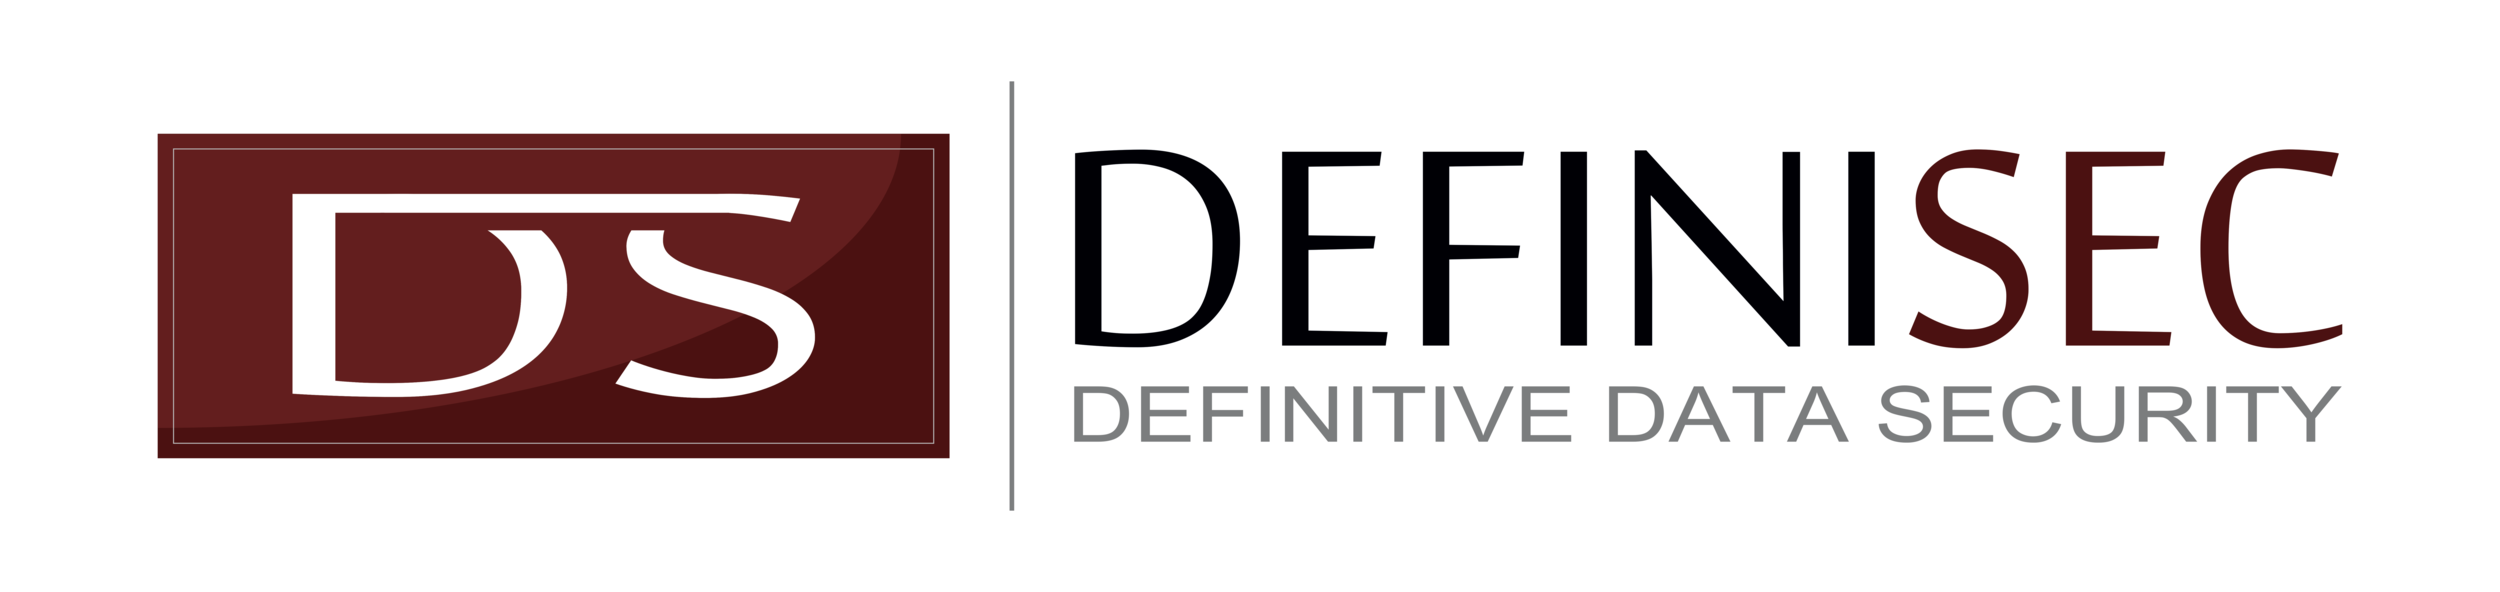 - Definitive Data Security was created in 2014 to manage application data and email despite growing Cybersecurity threats. In 2015 we released SSProtect and KODiAC Cloud Services, delivering patented innovations that require attackers to compromise endpoints and SaaS cloud resources to access managed content. With fine-grained 2FA and native application workflow integration, we delivered the first protection and management solution to impose almost no impact on application selection and use while retaining full infrastructure flexibility.In 2016, we expanded our service foundation with policy-based Collaboration, automated Backup/ Restore, Disaster Recovery services, Sabotage Remediation, and finally our Objective Disclosure Risk Reporting services. Each was designed to maximize Incident Response, Recovery, and Forensic operation efficiency while together as a whole aligned to maintain business and operational continuity in the most challenges circumstances.Today, we are working with VARs, MSPs, and ISVs to address the unique needs of finance, health care, government, entertainment, and other industries with our scalable, secure data management platform that's easy to deploy, administer, and use.